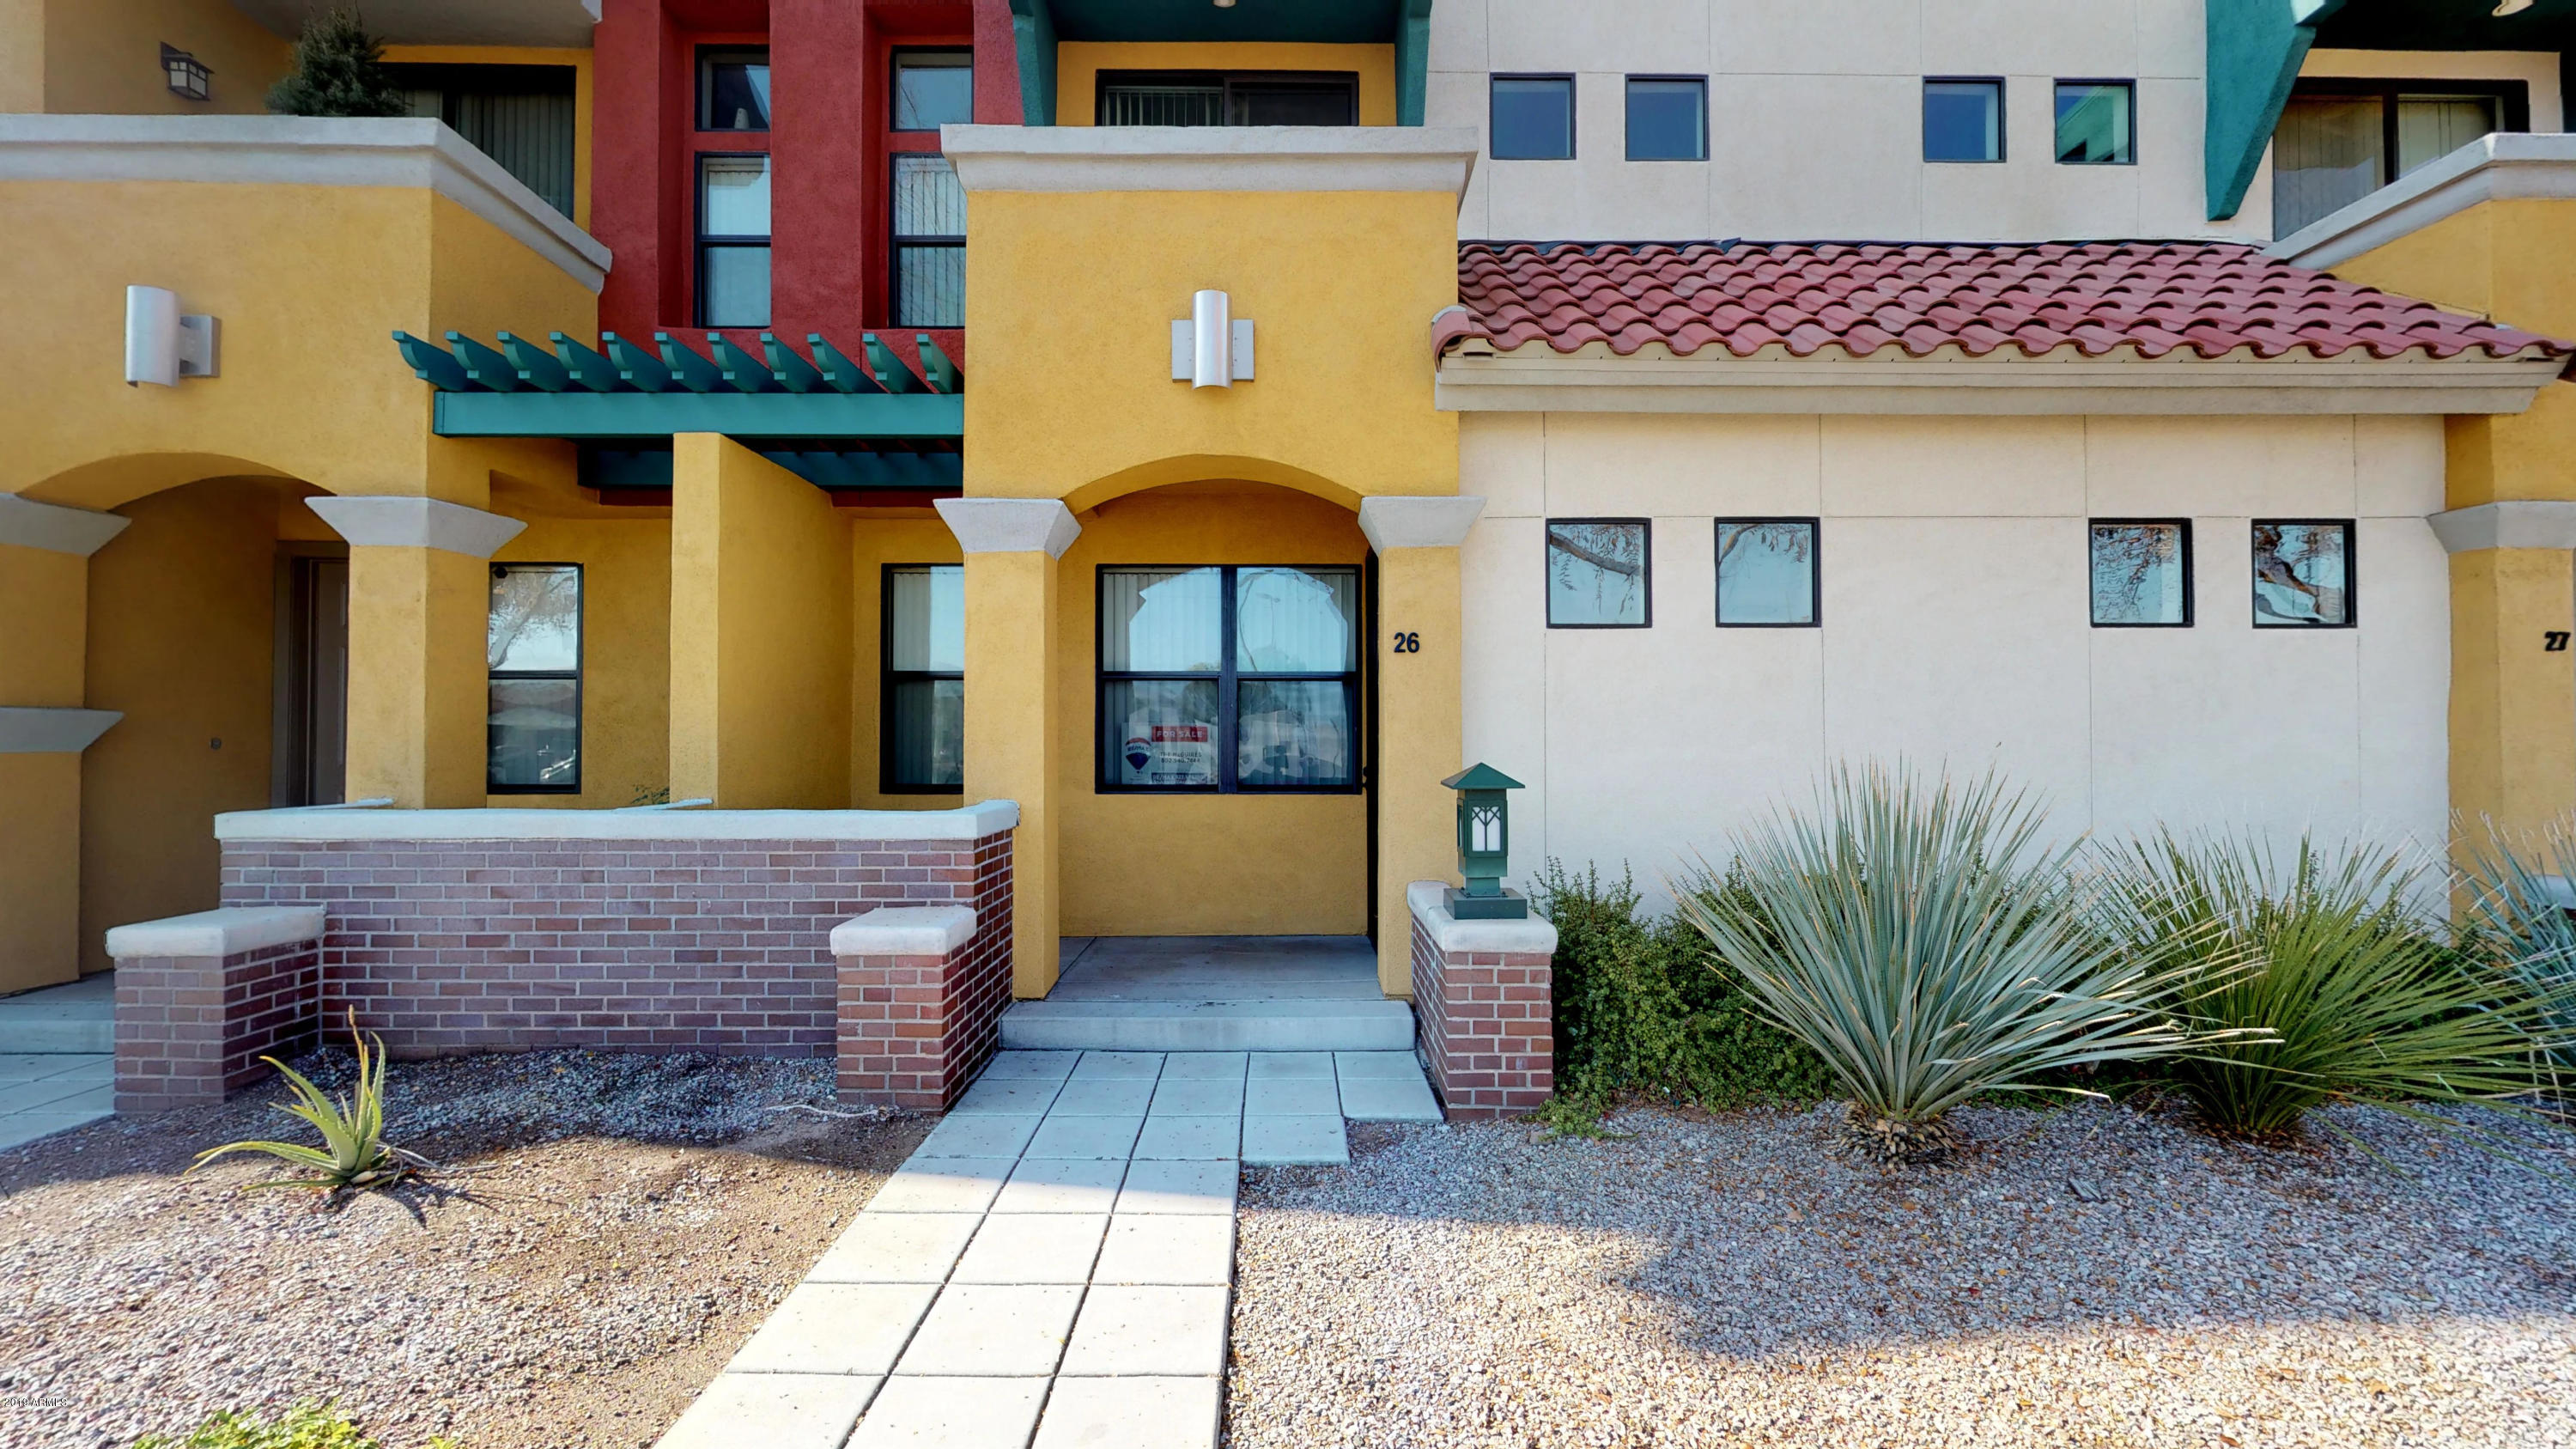 Photo of 123 N WASHINGTON Street #26, Chandler, AZ 85225